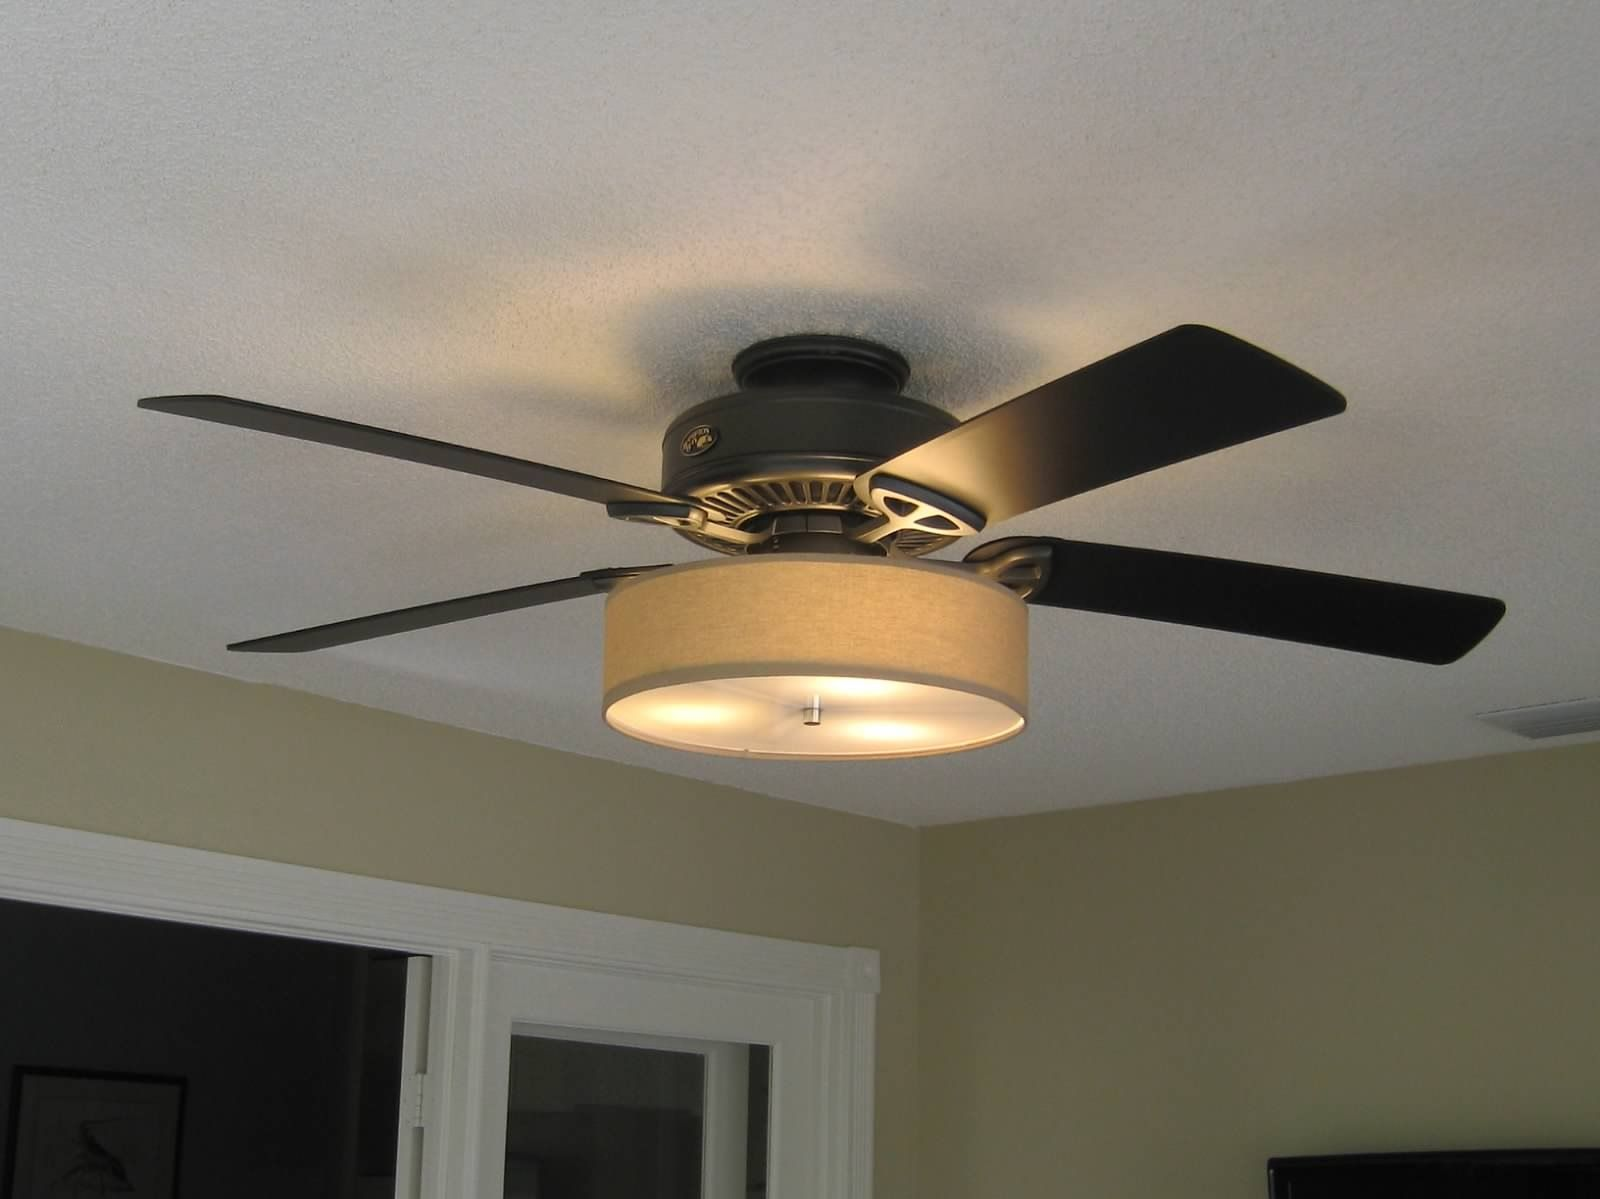 fan view westinghouse fans all sale plus lighting jet direct ceiling lights light inch with on ceilings